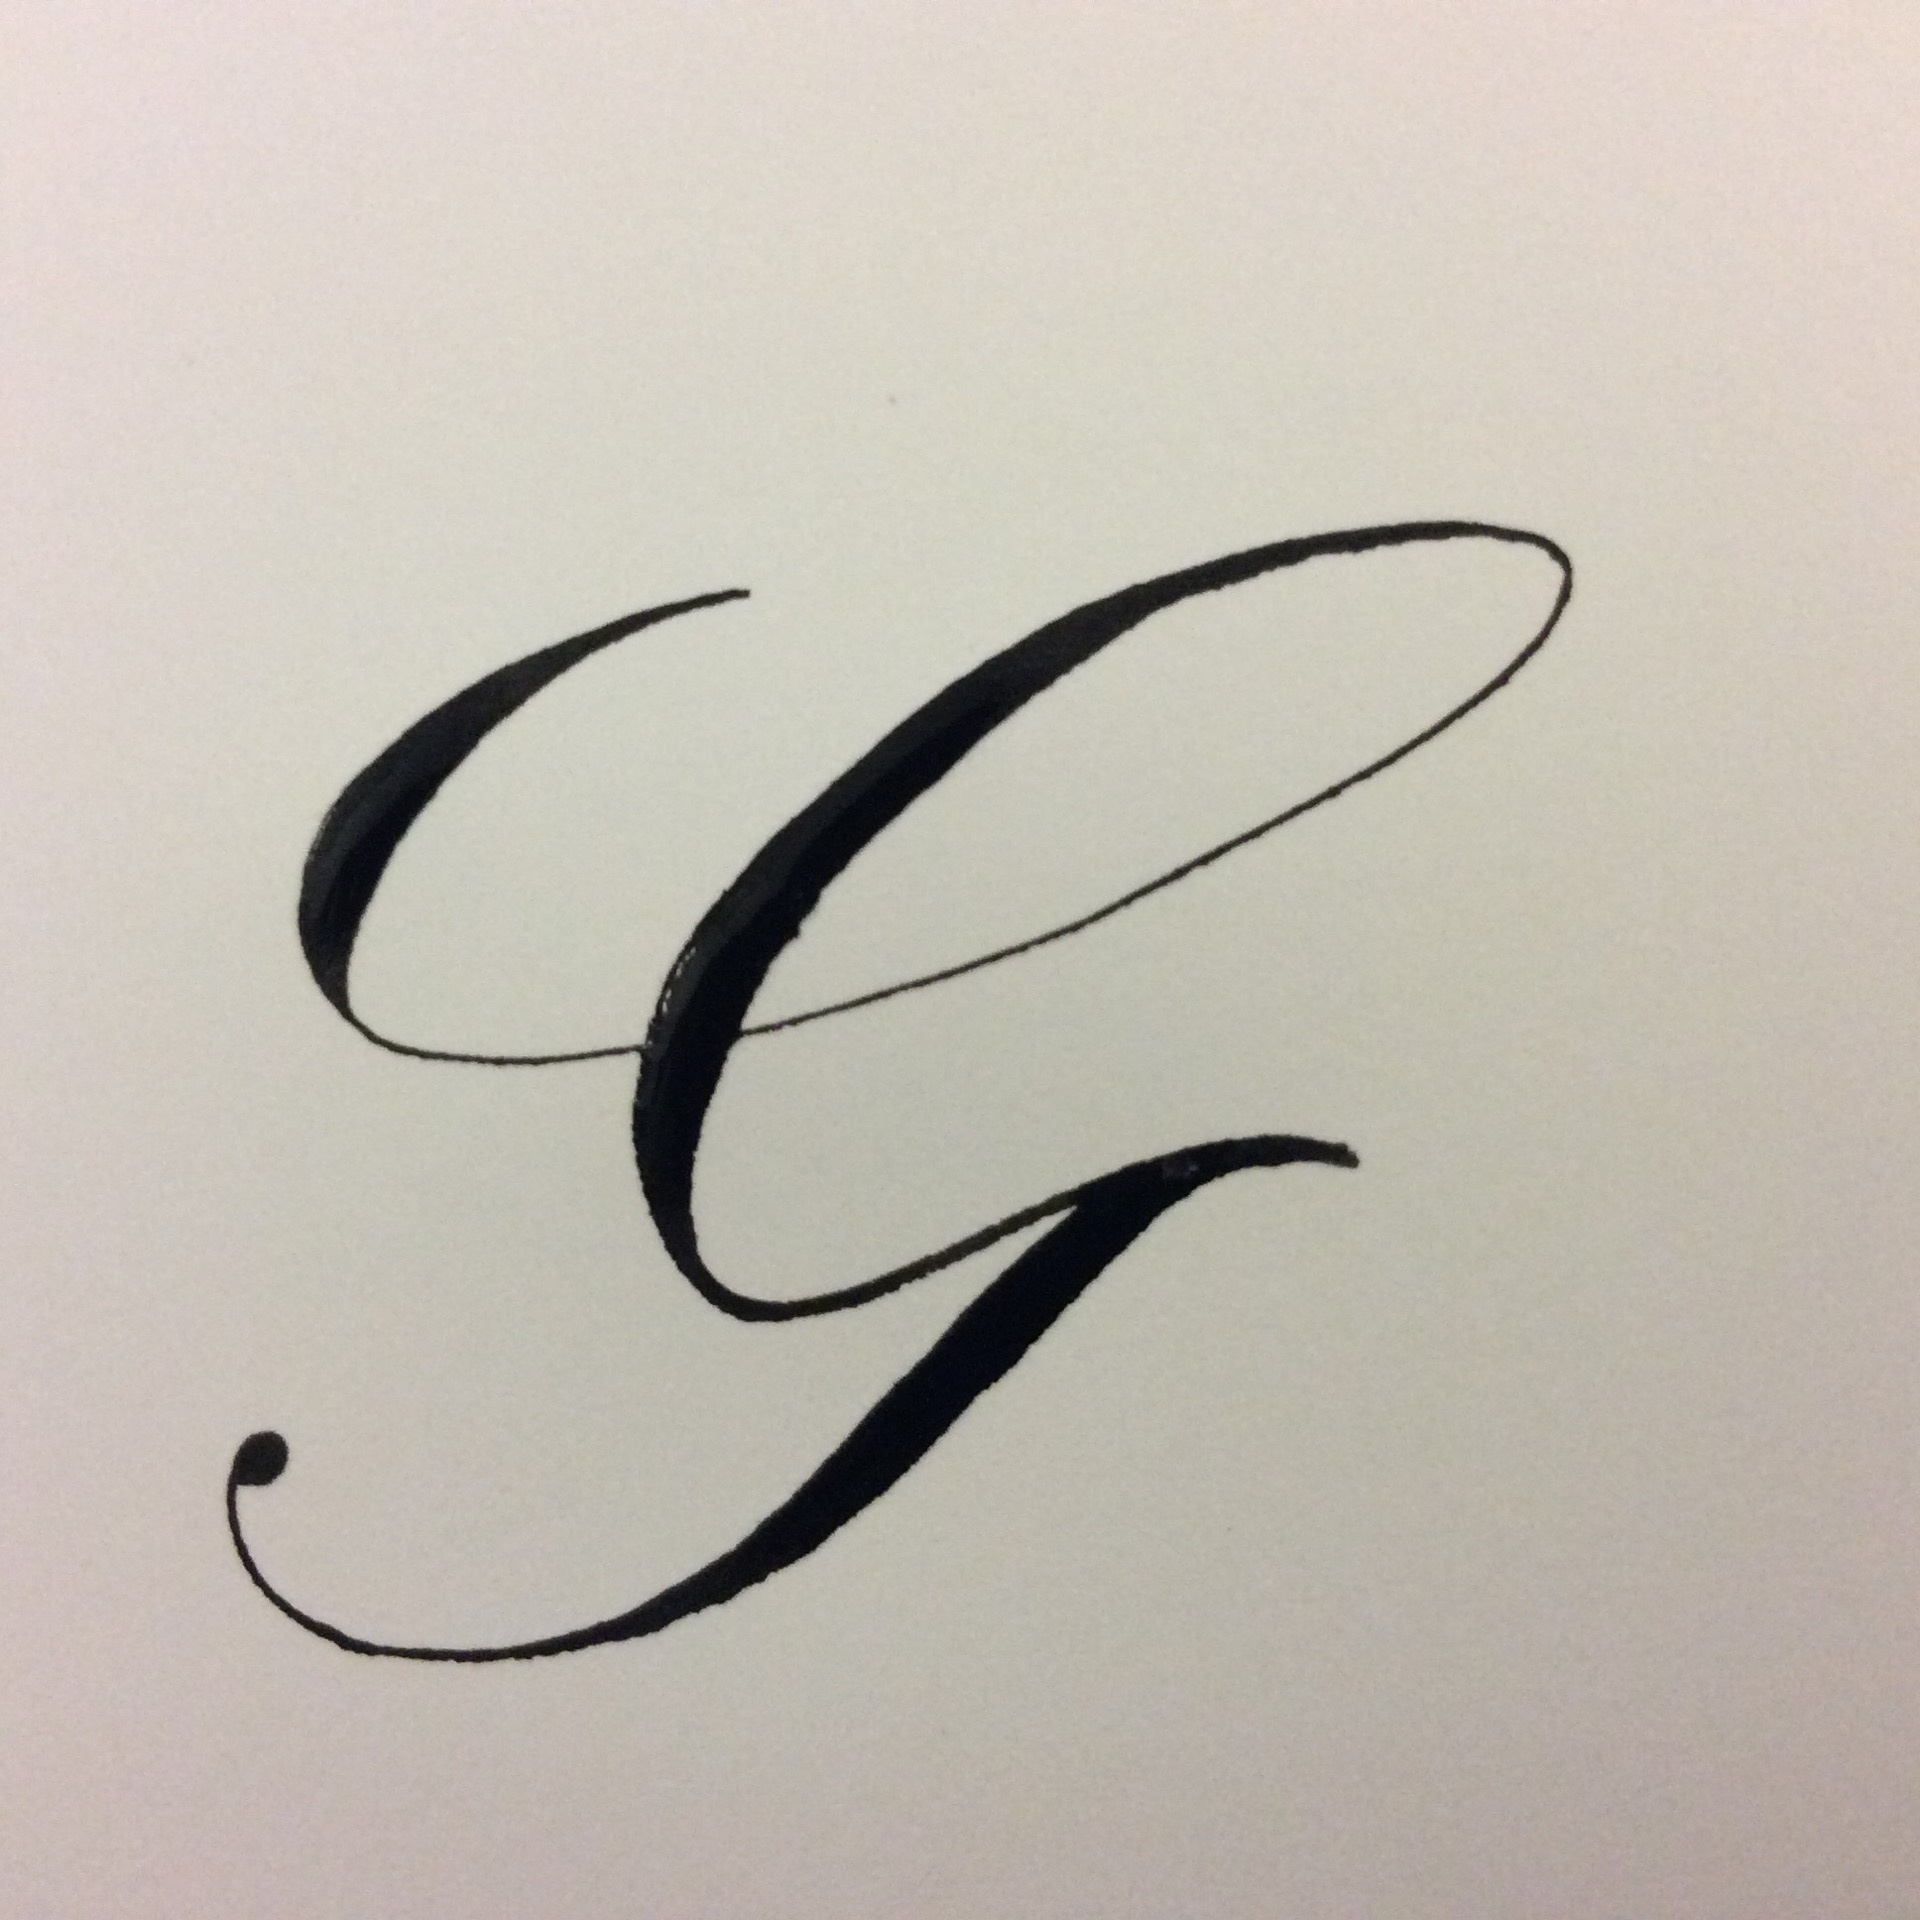 How to write a capital G in cursive - Quora